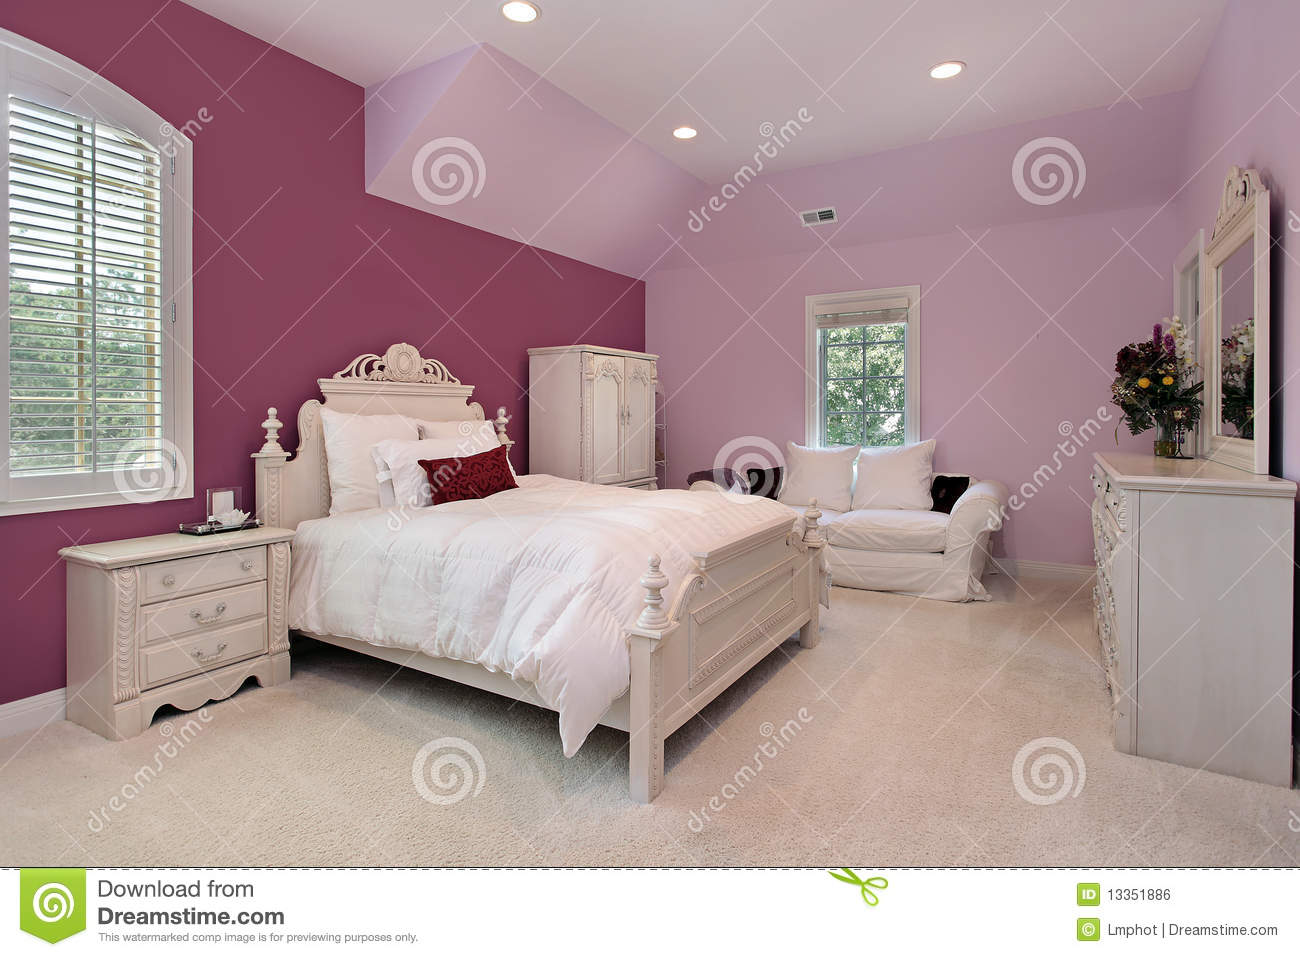 Chambre coucher rose photos – 2,358 chambre coucher rose images ...